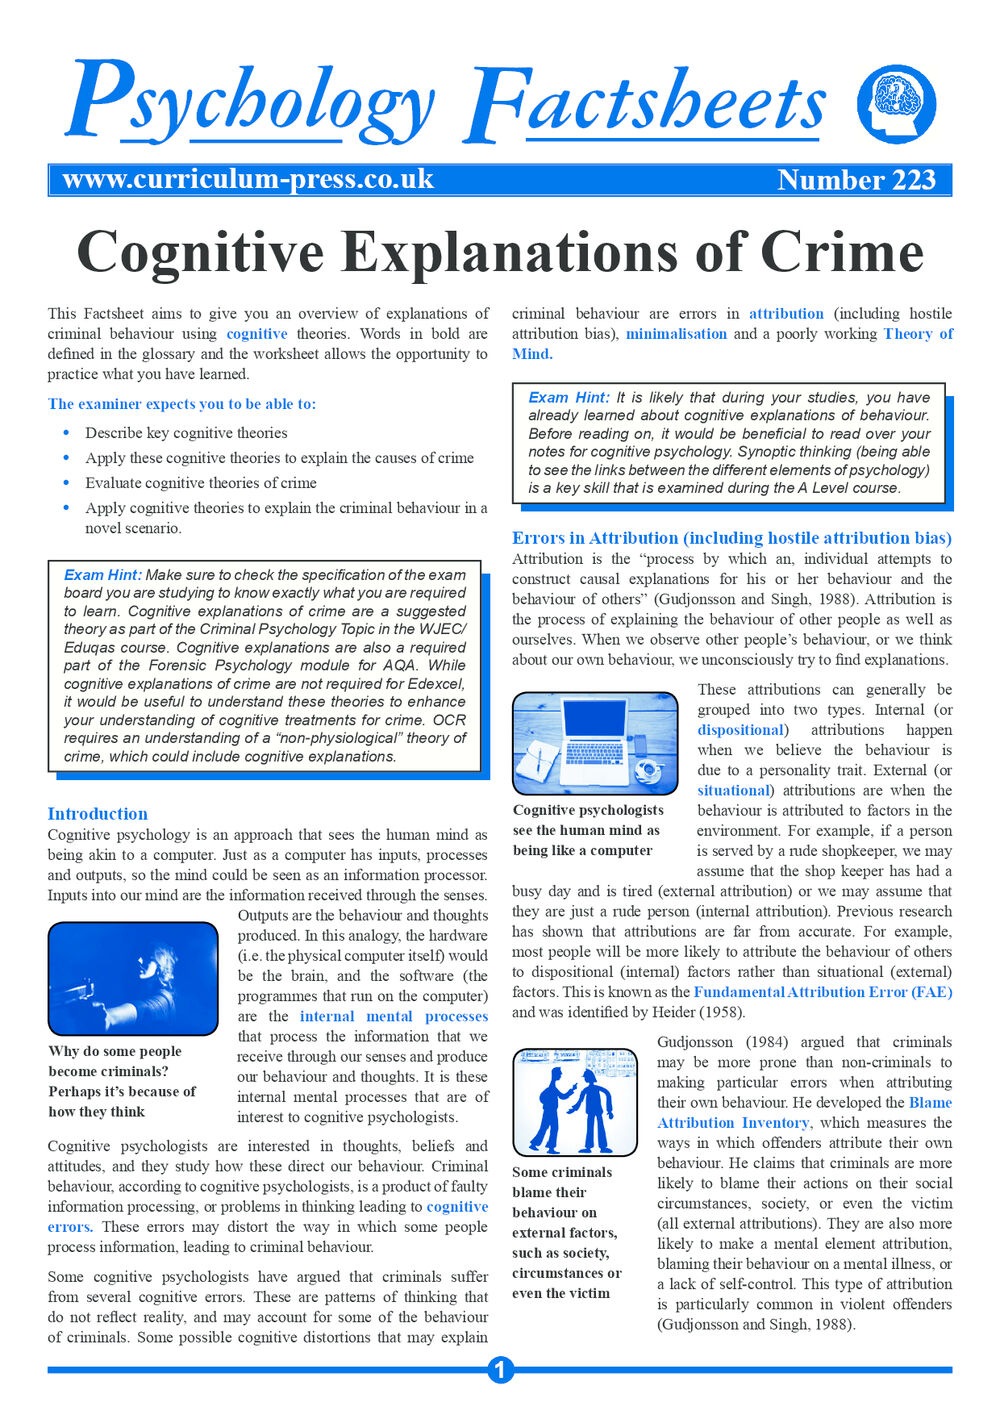 223 Cognitive Explanations Of Crime